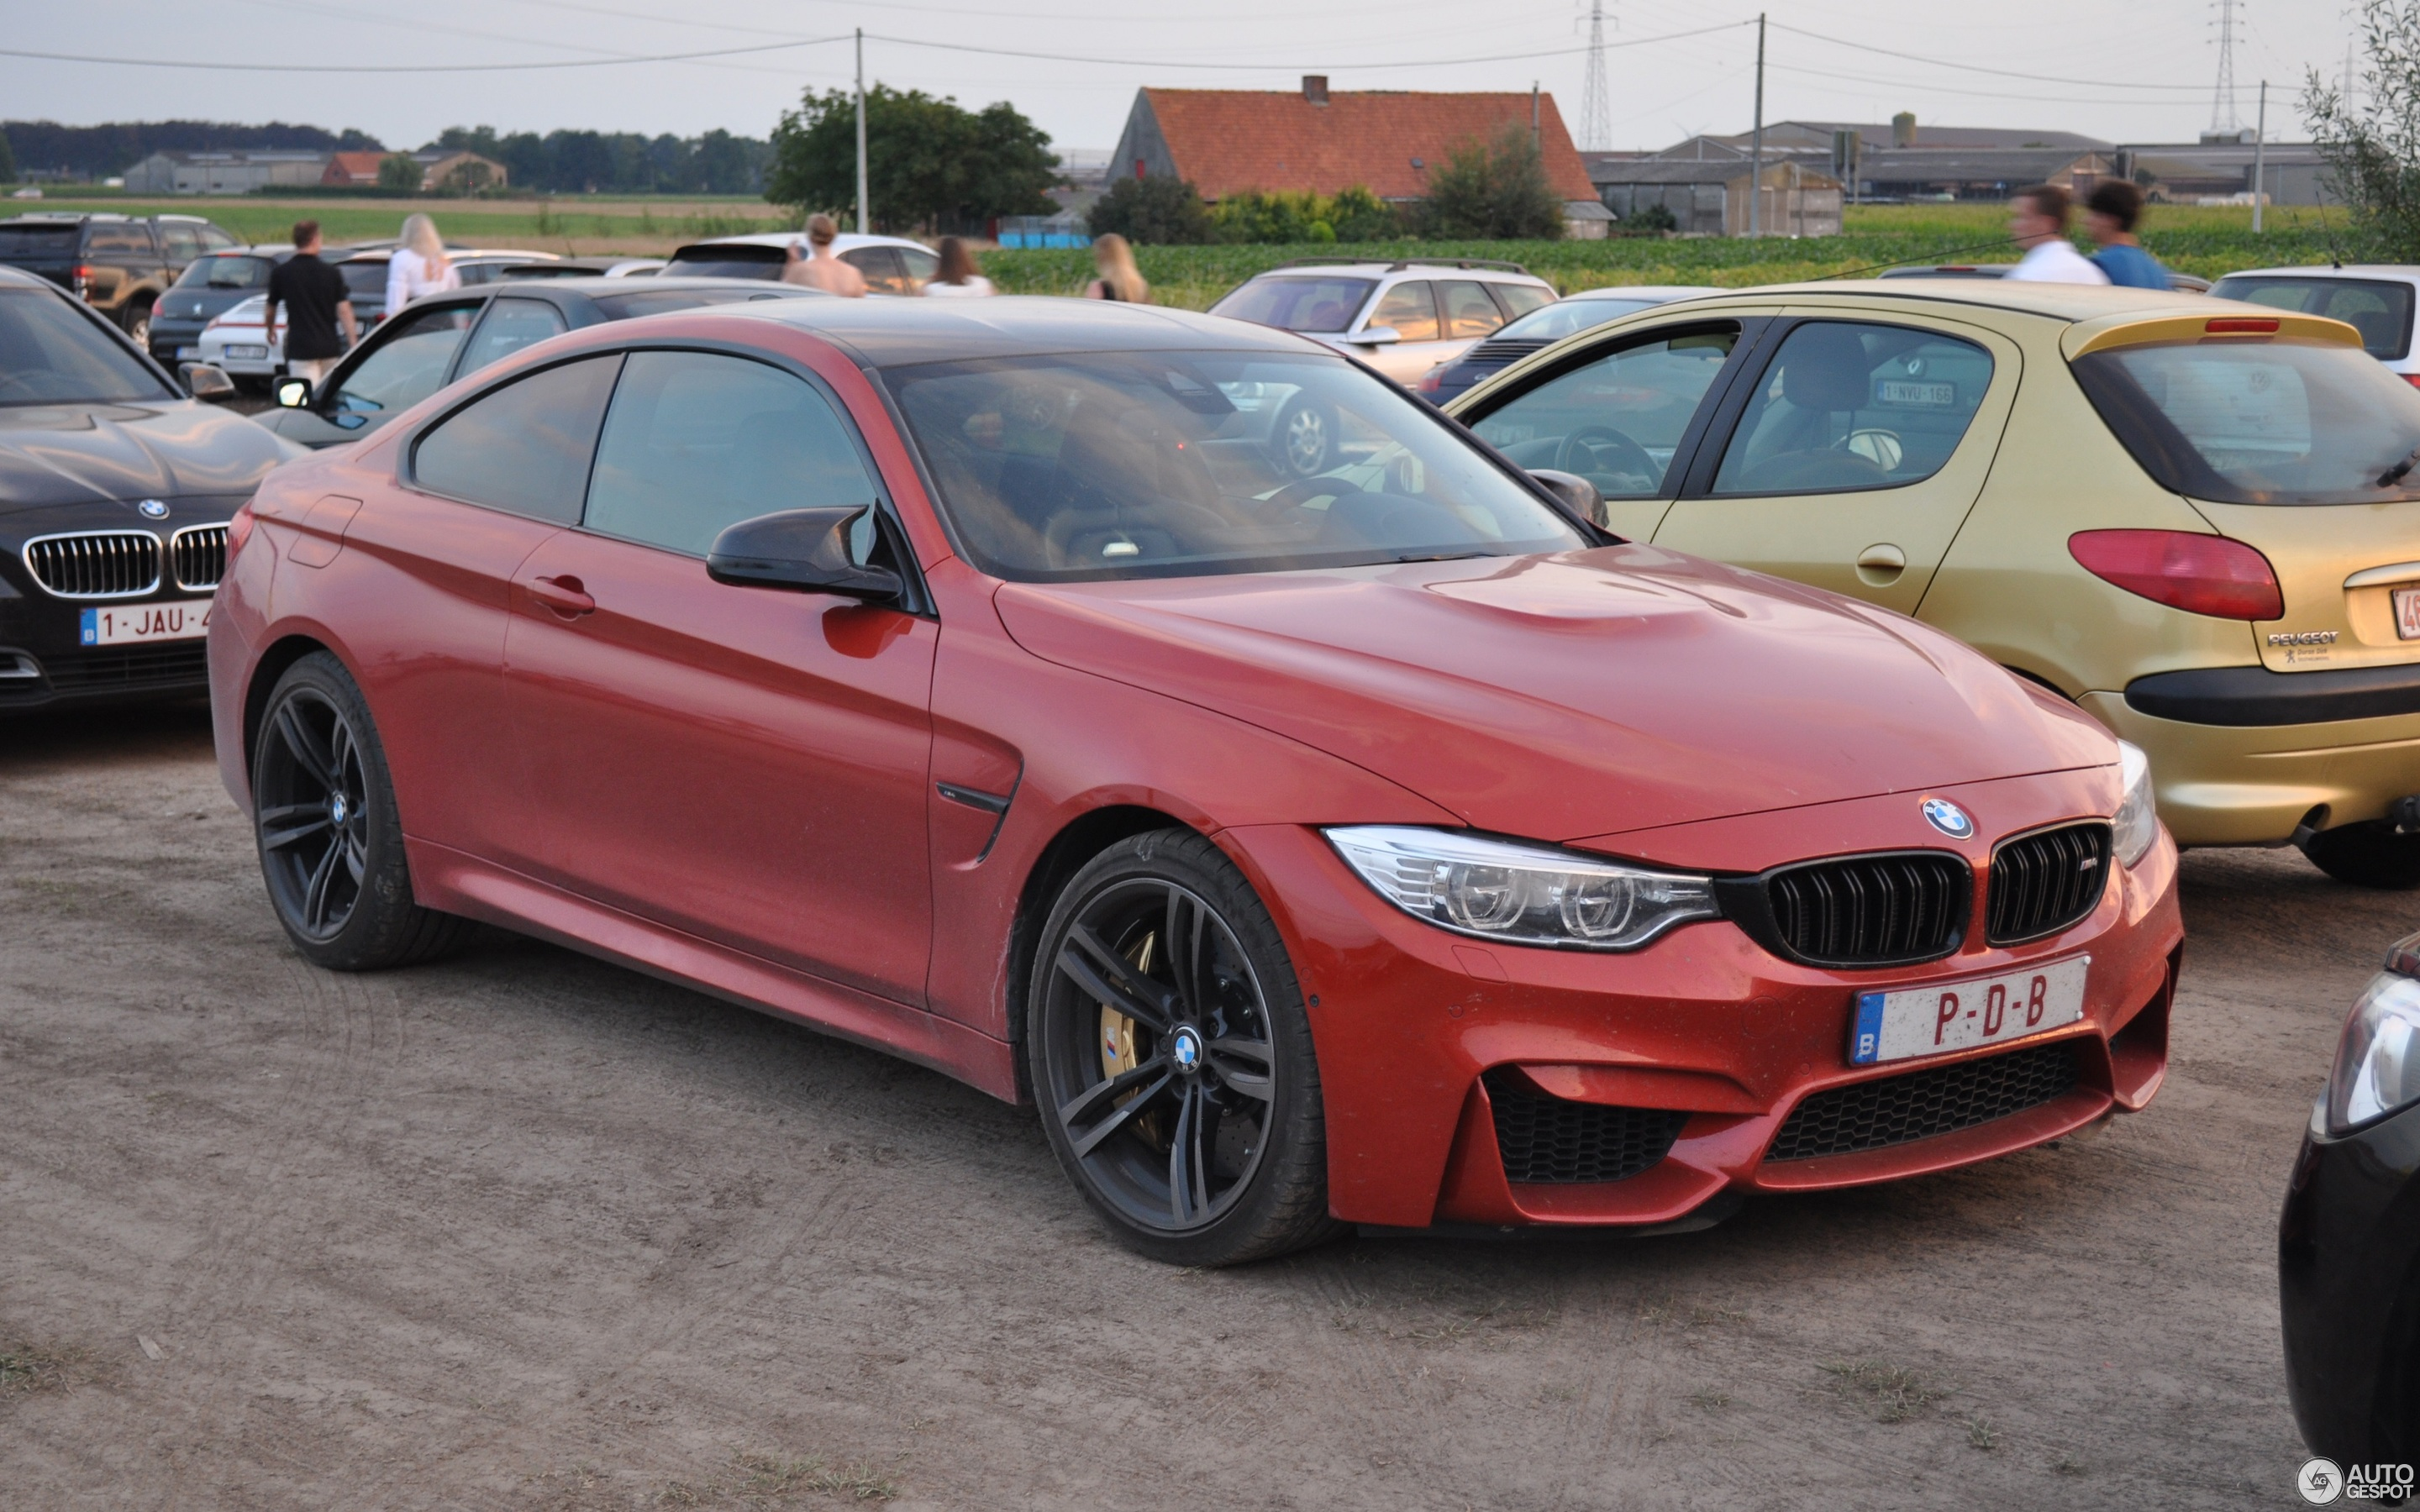 BMW M4 F82 Coupé 27 August 2016 Autogespot